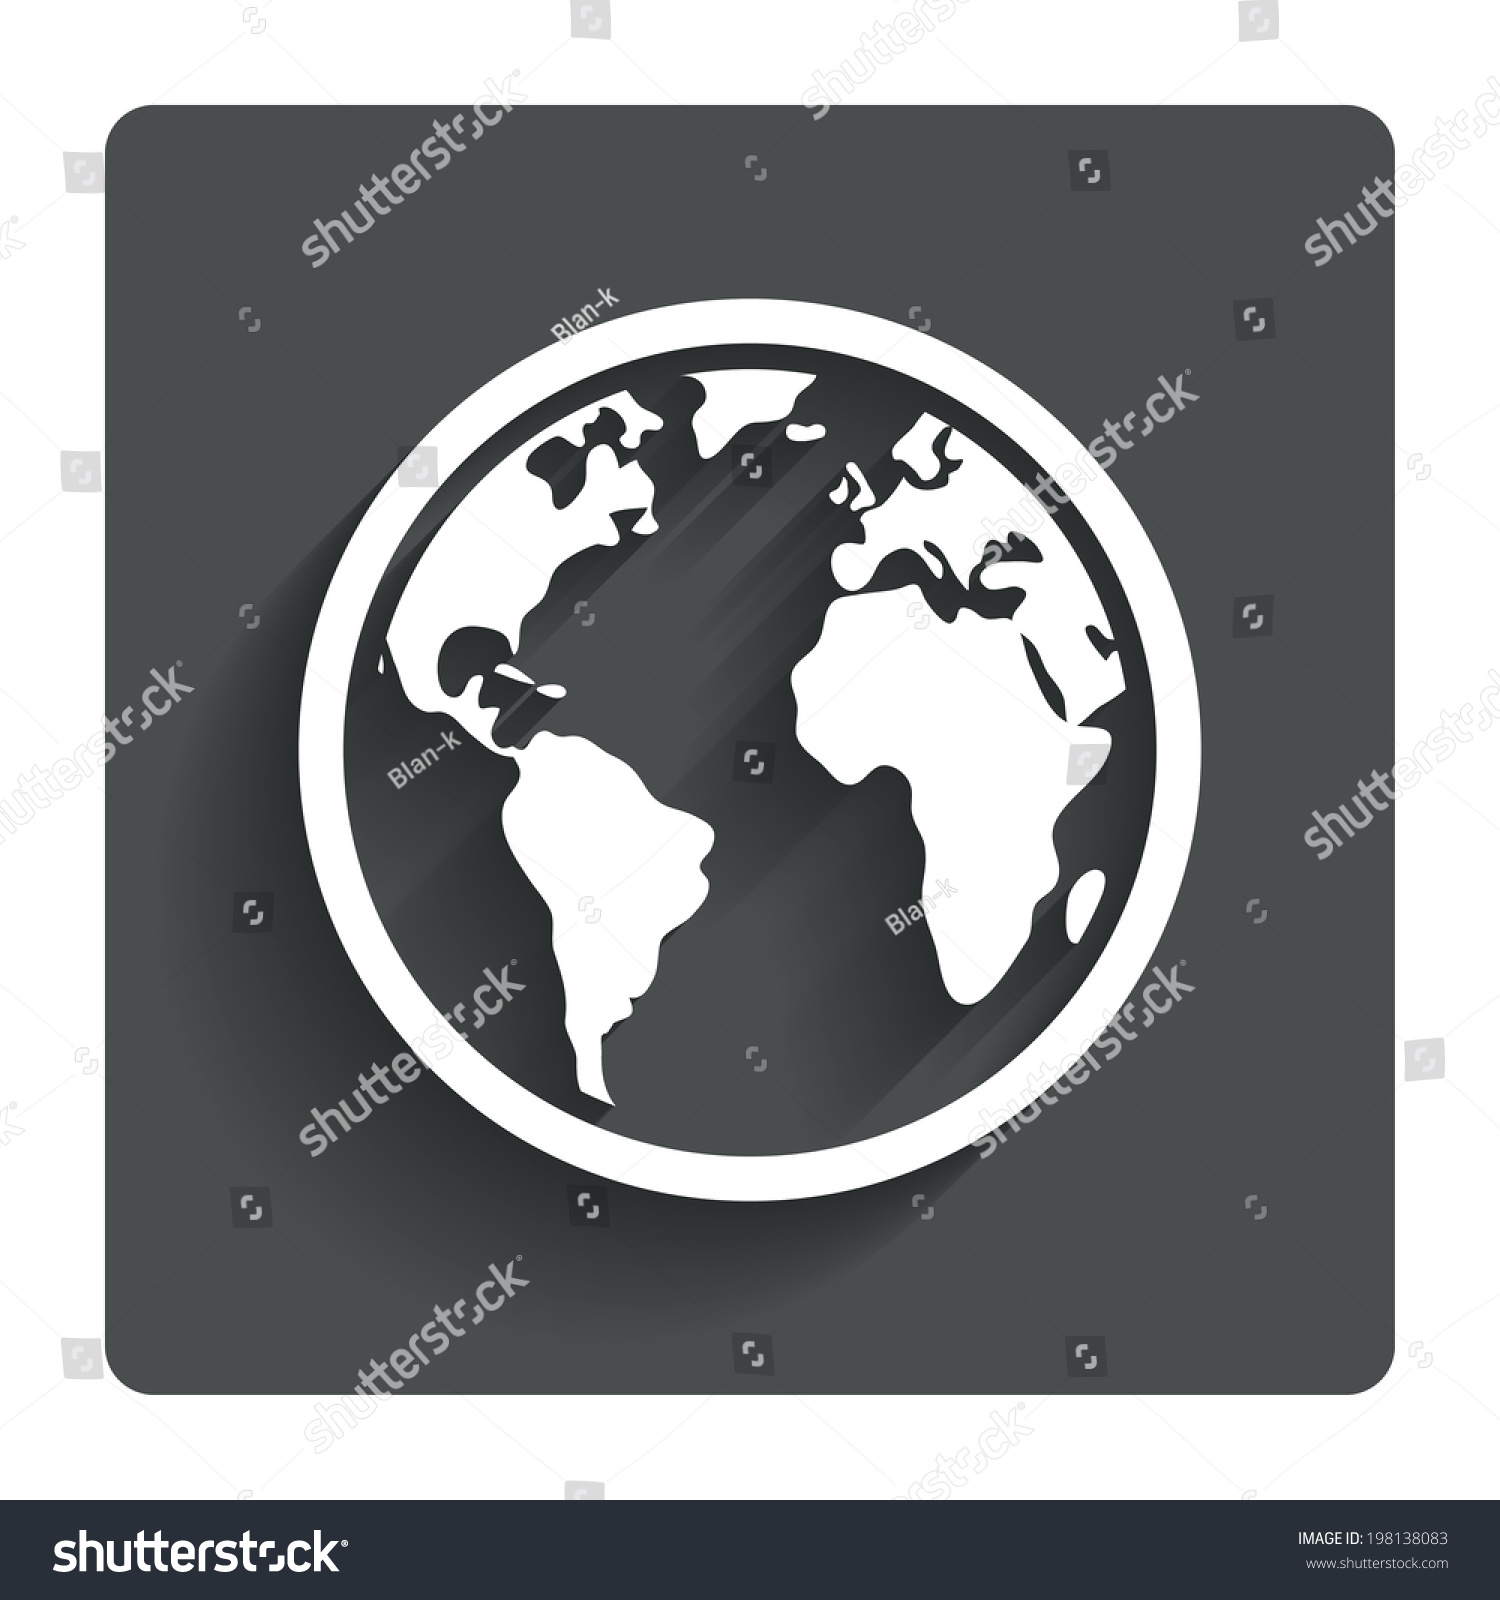 Globe sign icon world map geography stock vector 198138083 globe sign icon world map geography symbol gray flat button with shadow modern gumiabroncs Images